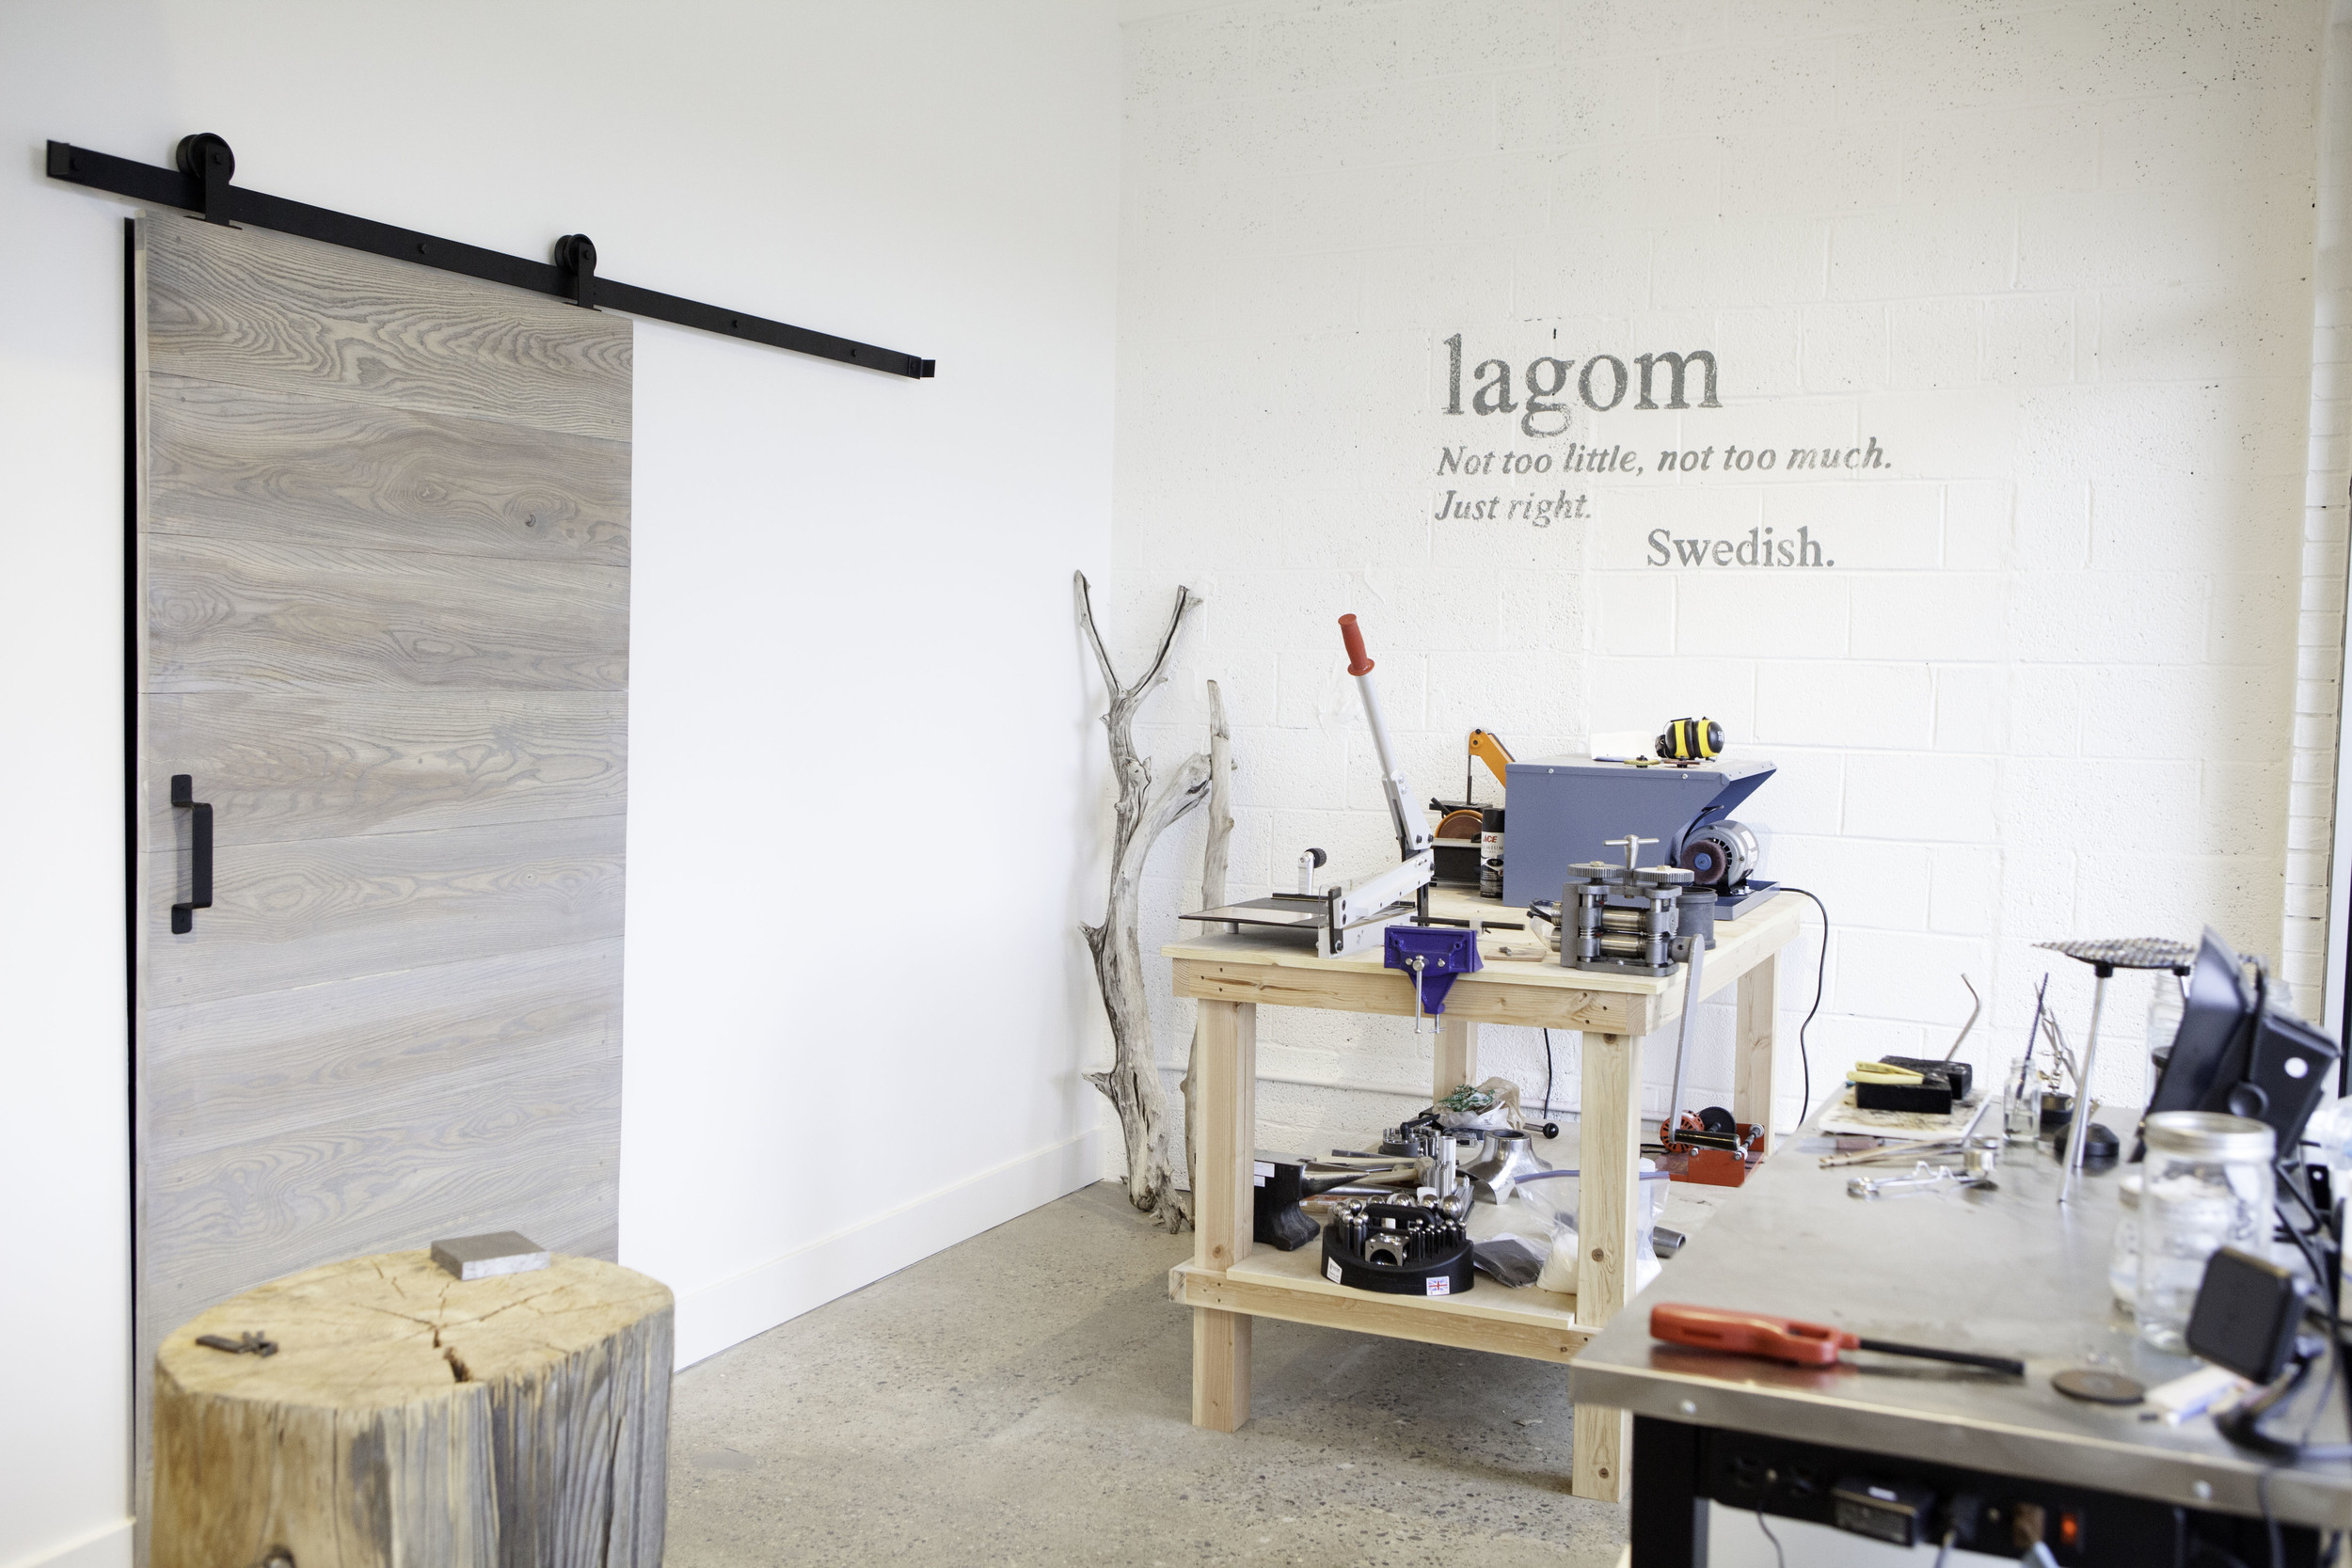 "My open workshop. The stump I found in Idaho where I hammer, the workbench in the back that houses my many tools and machines, the soldering station to the right, the sliding barndoor that goes into my storage room and the hand painted Swedish saying of ""Lagom"" on the wall."